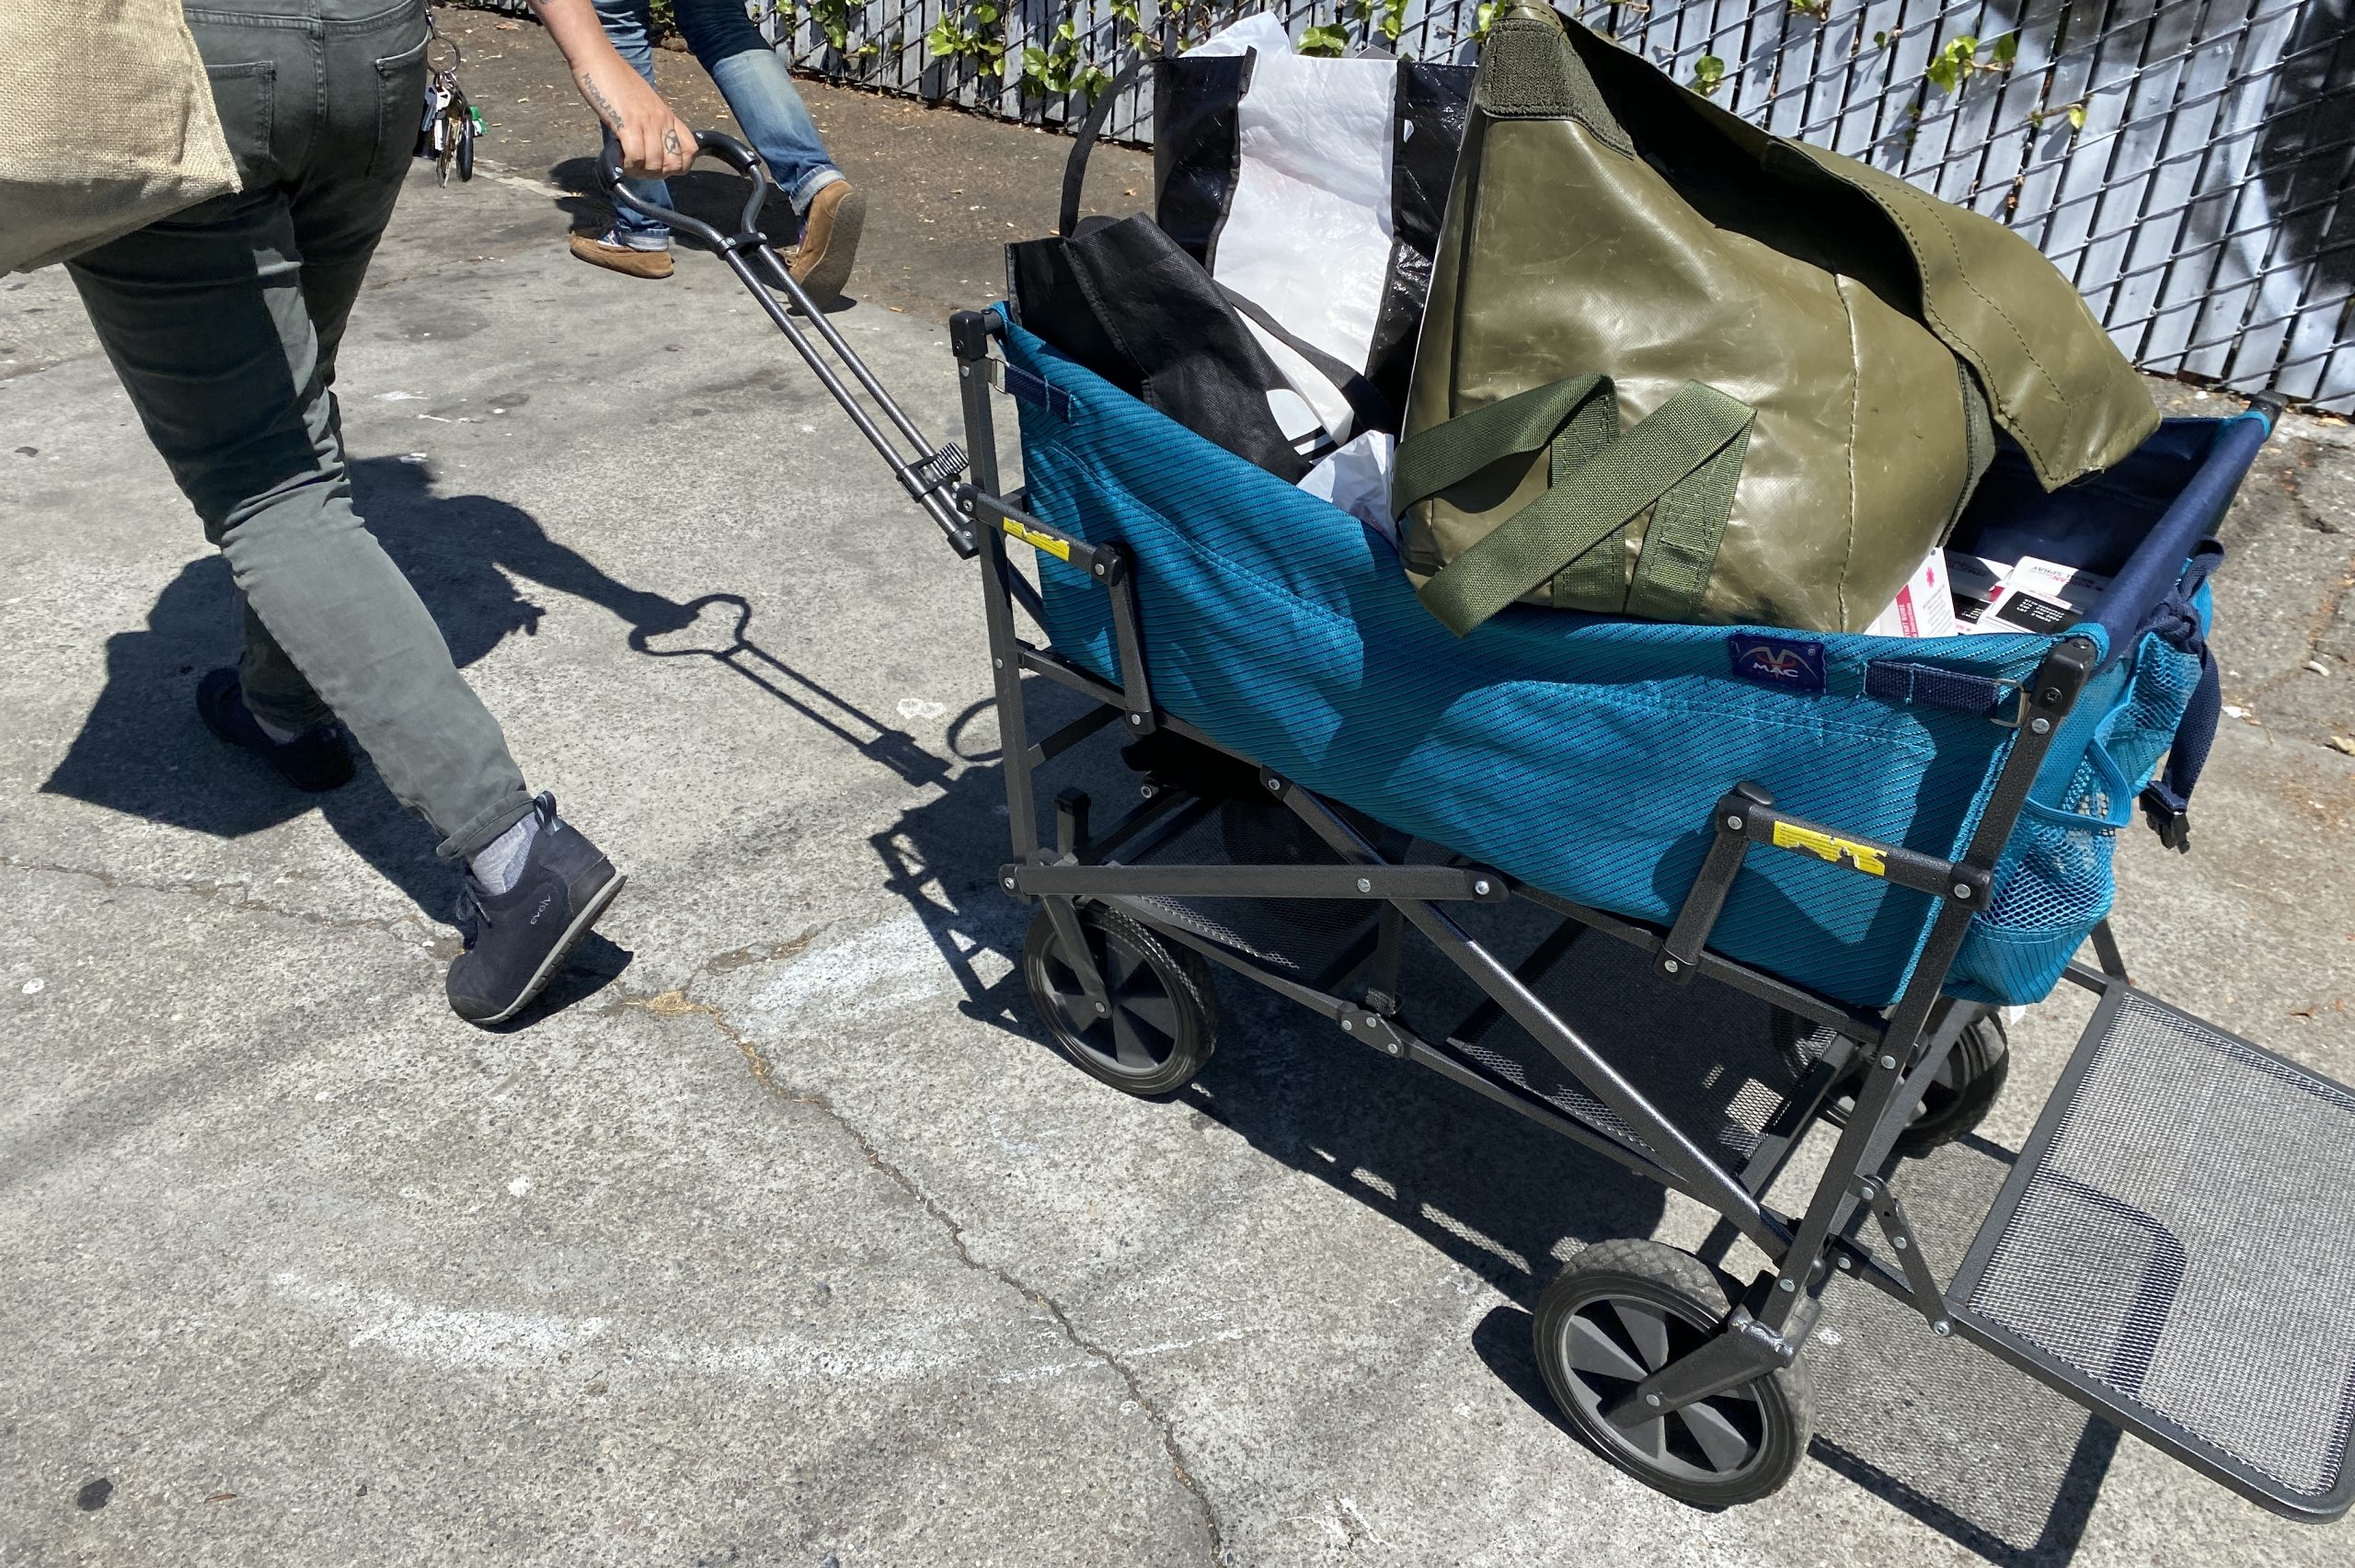 An outreach worker with West Oakland Punks With Lunch pulls a handcart with sterile supplies in West Oakland.